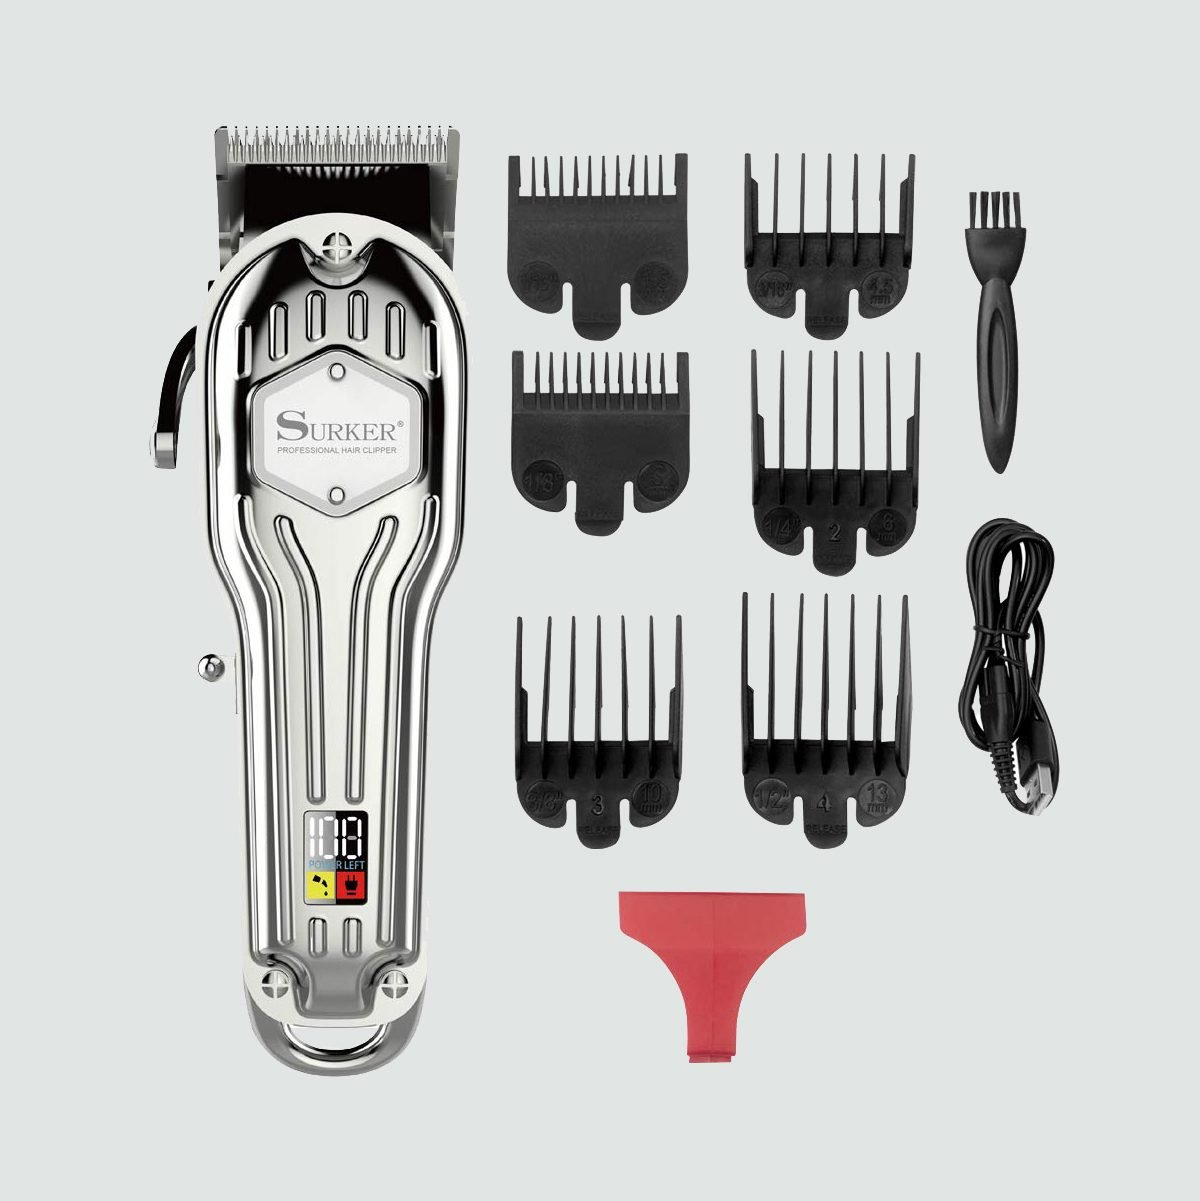 Surker Professional 5-Star Cord/Cordless Hair Clipper